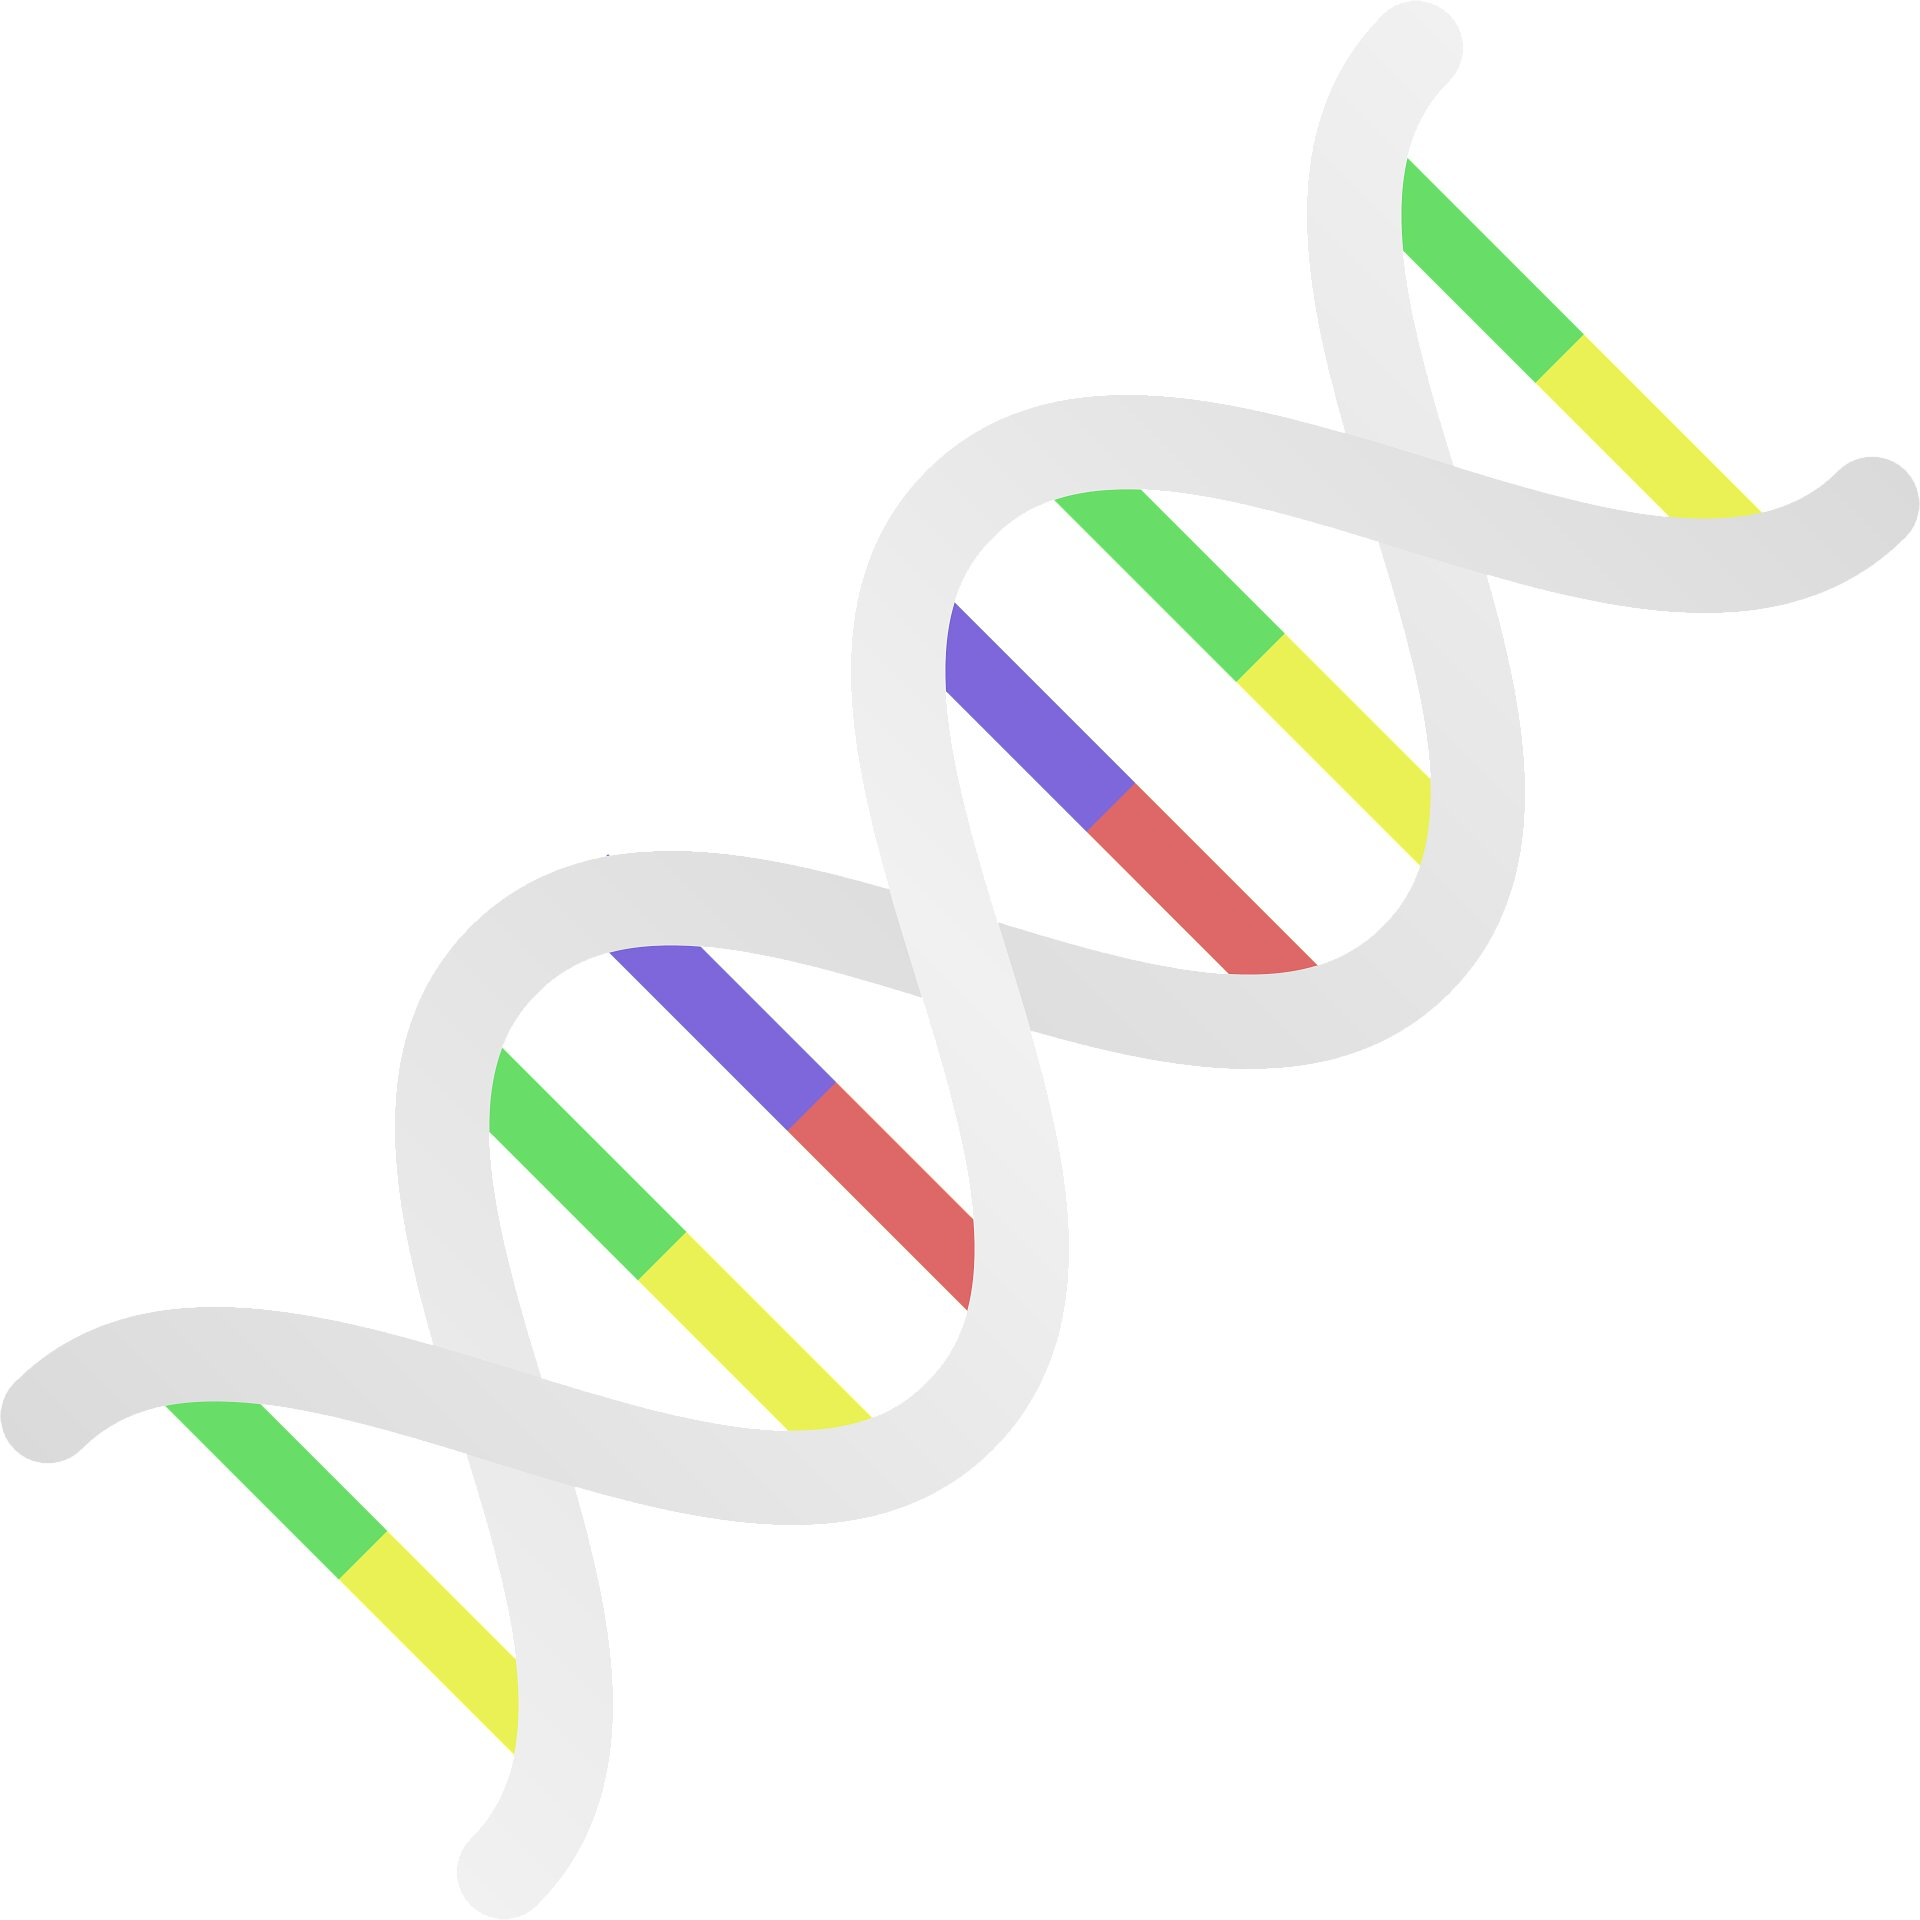 Researchers uncover biochemical rules between RNA-protein interactions and expressions